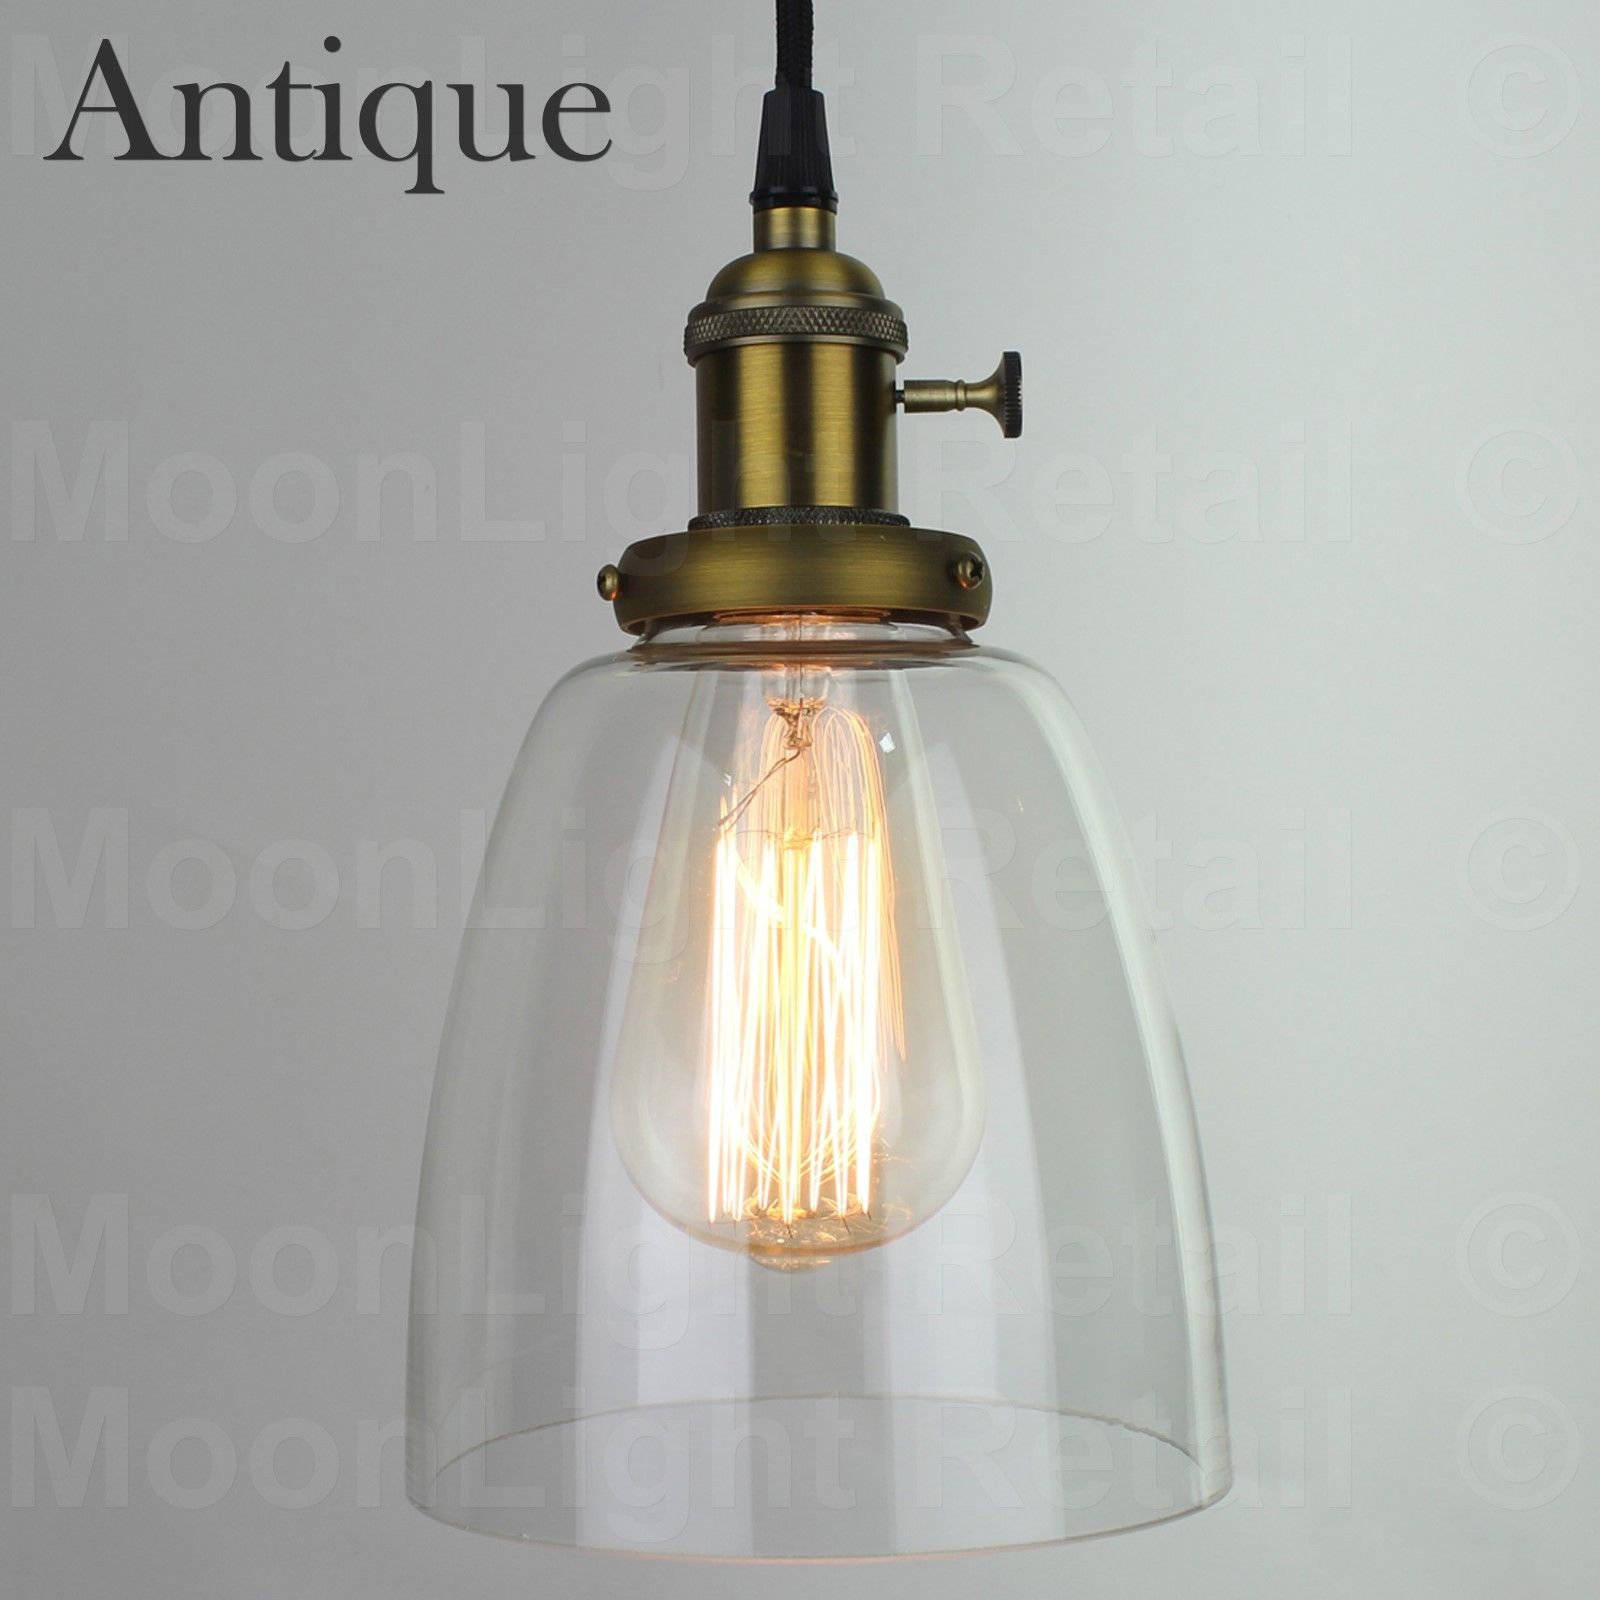 VINTAGE INDUSTRIAL CEILING LAMP CAFE GLASS PENDANT LIGHT SHADE ...